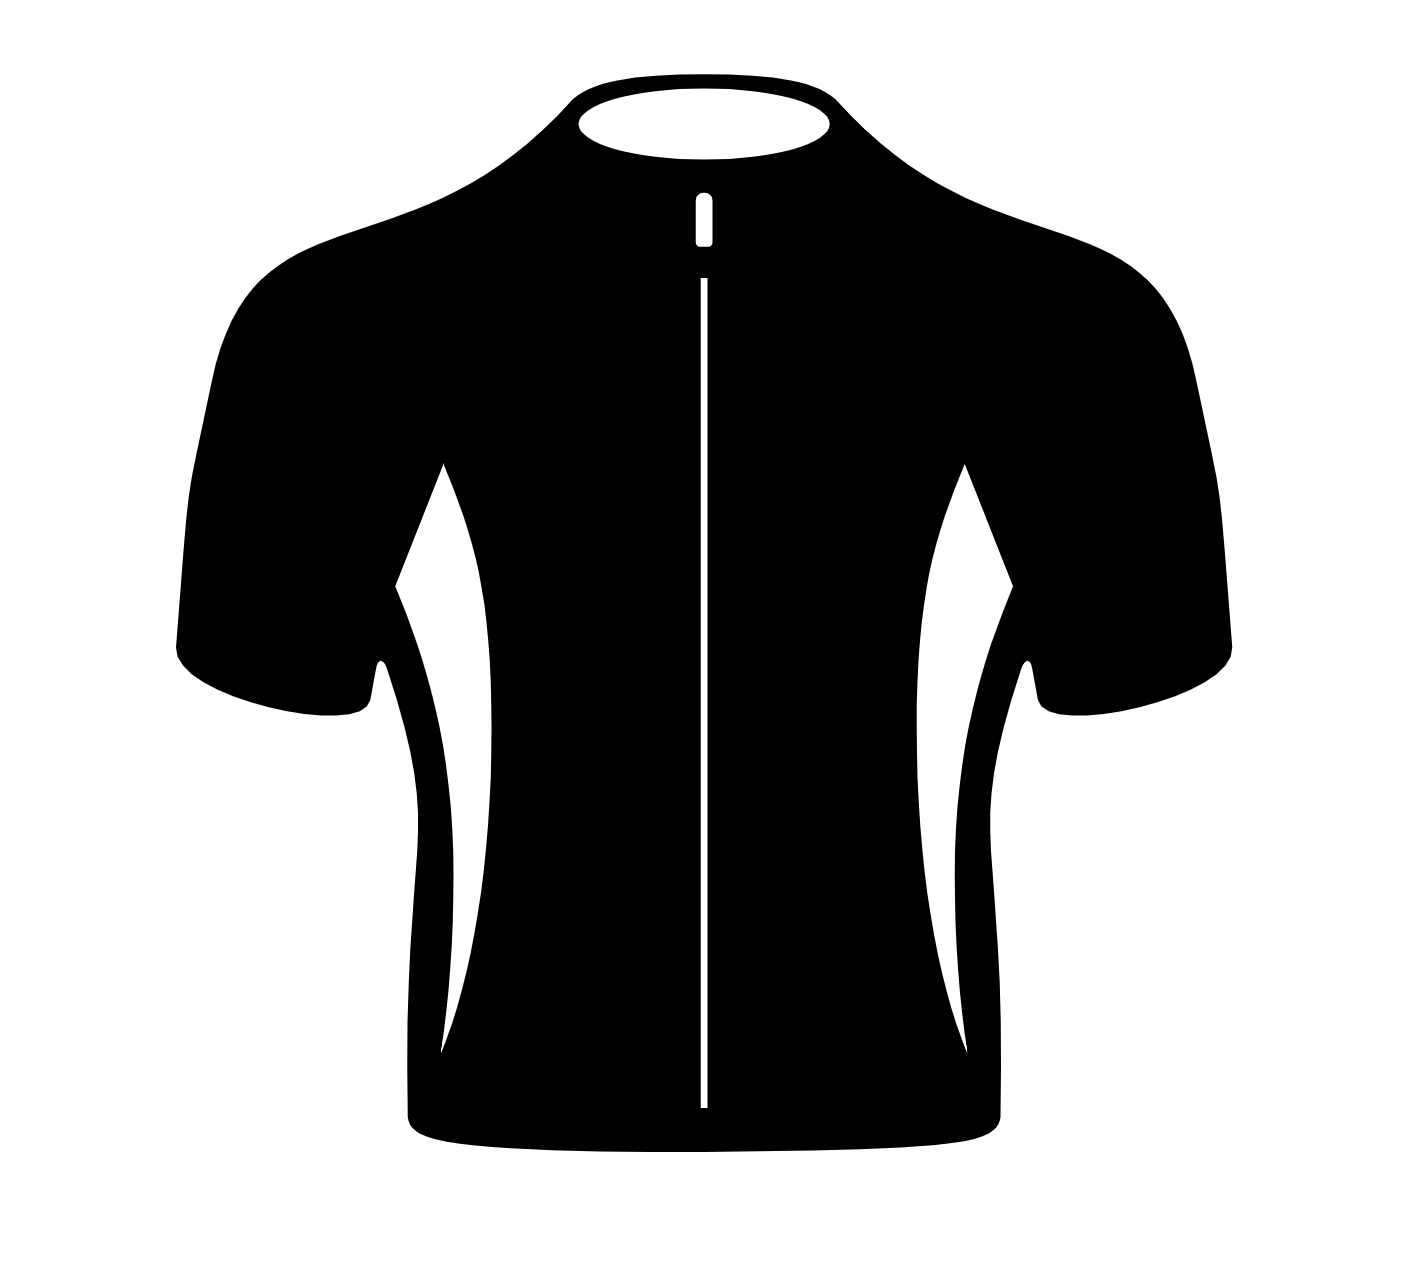 1 comp jersey for club raffle or giveaway